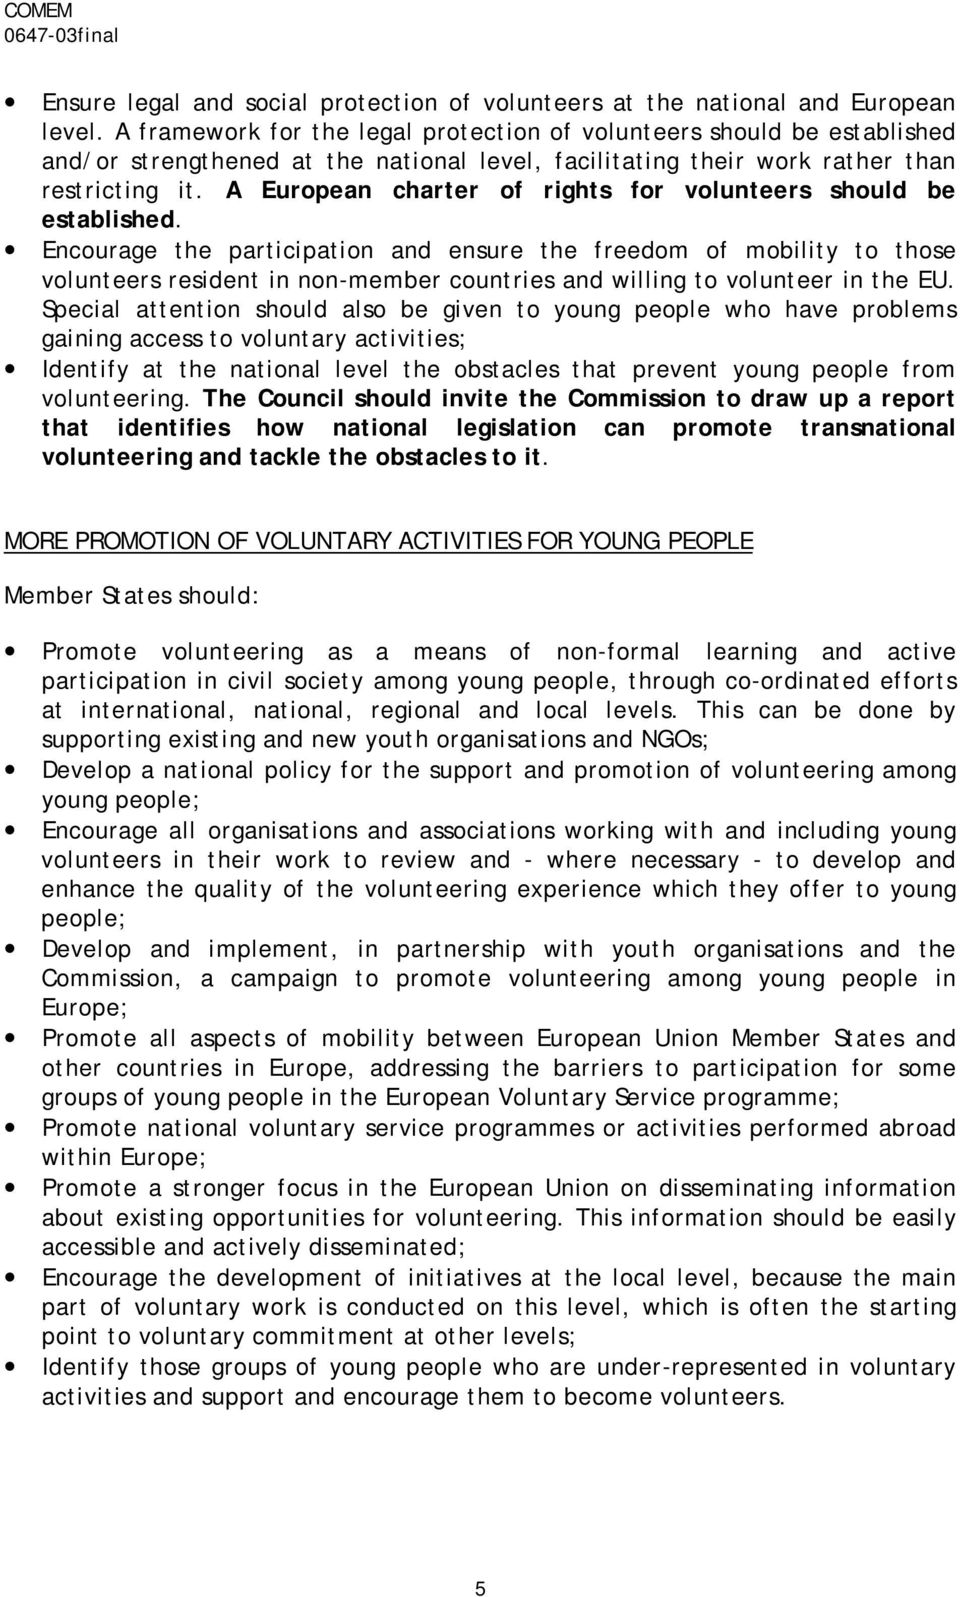 A European charter of rights for volunteers should be established.